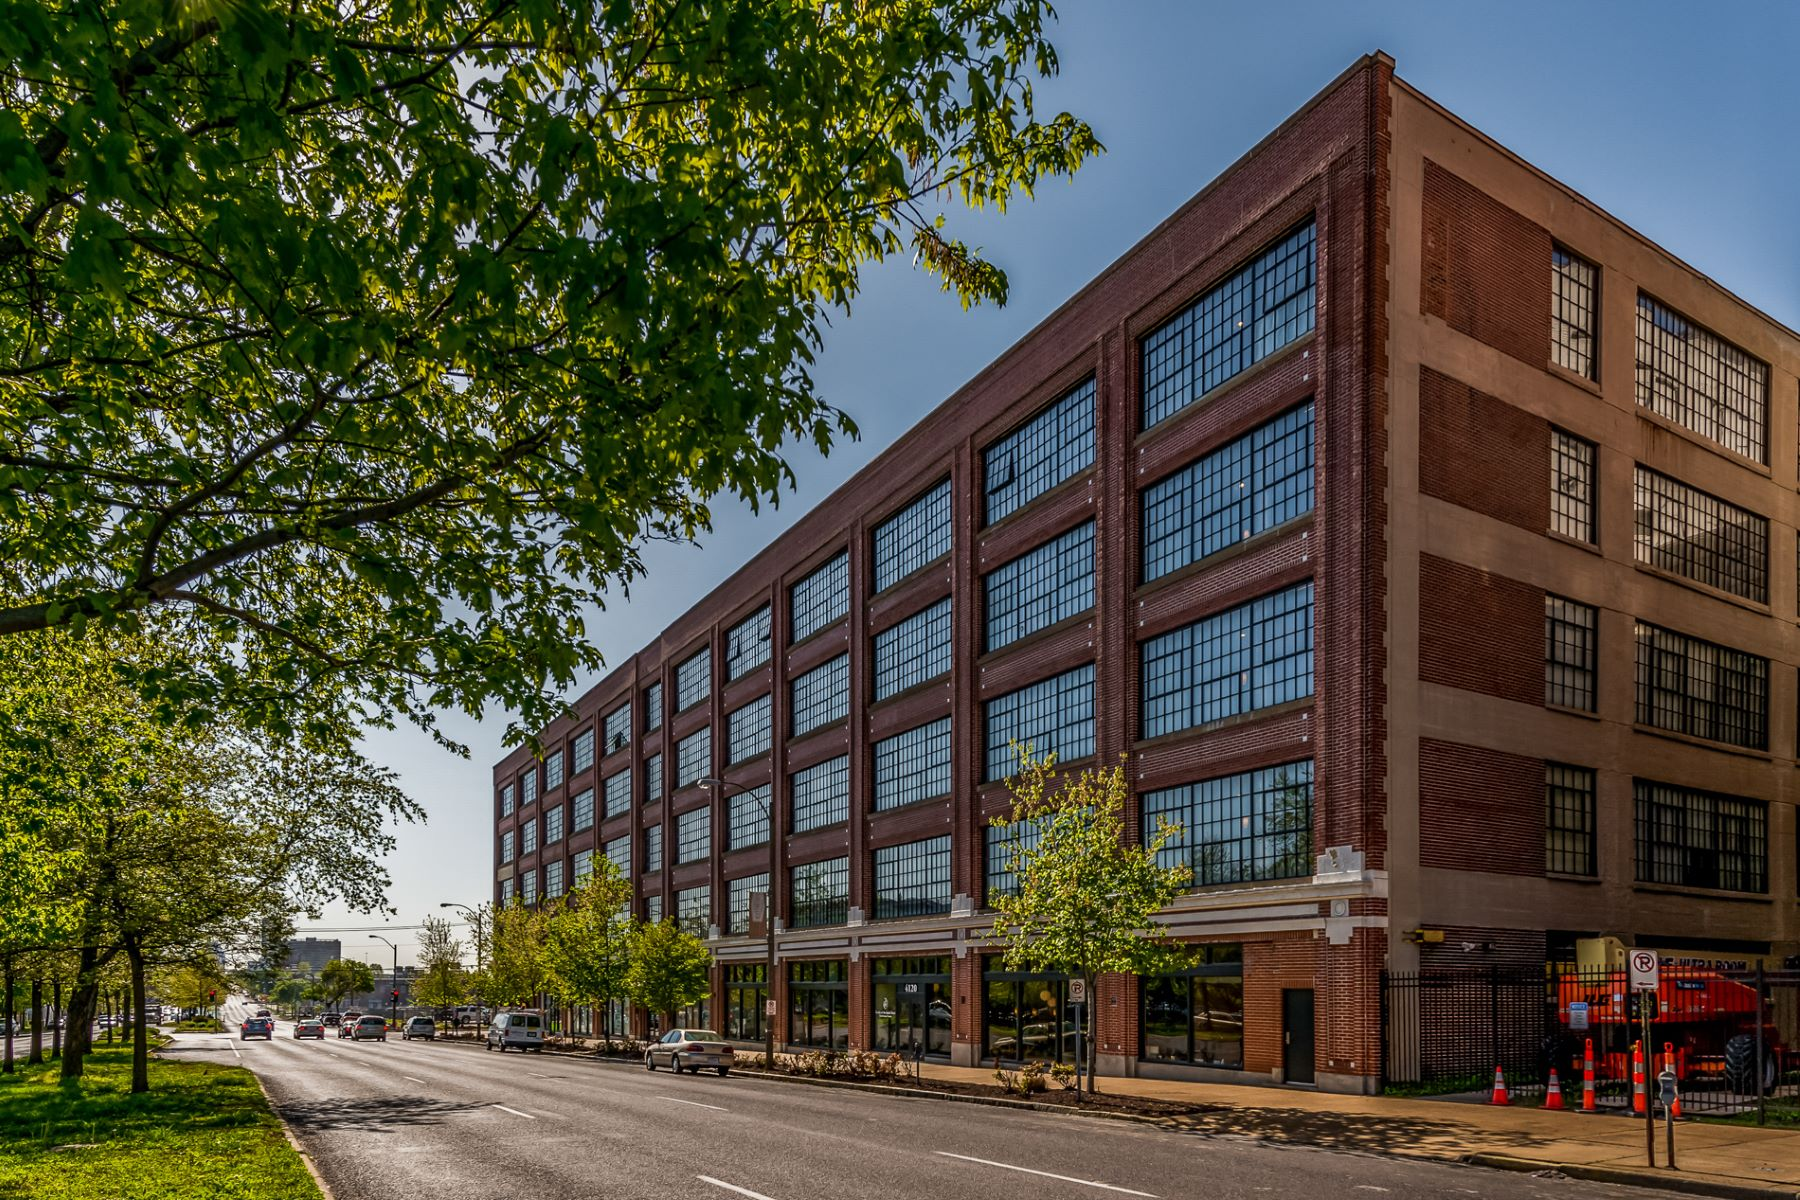 Property for Sale at West End Lofts #526 4100 Forest Park Ave #526 St. Louis, Missouri 63108 United States